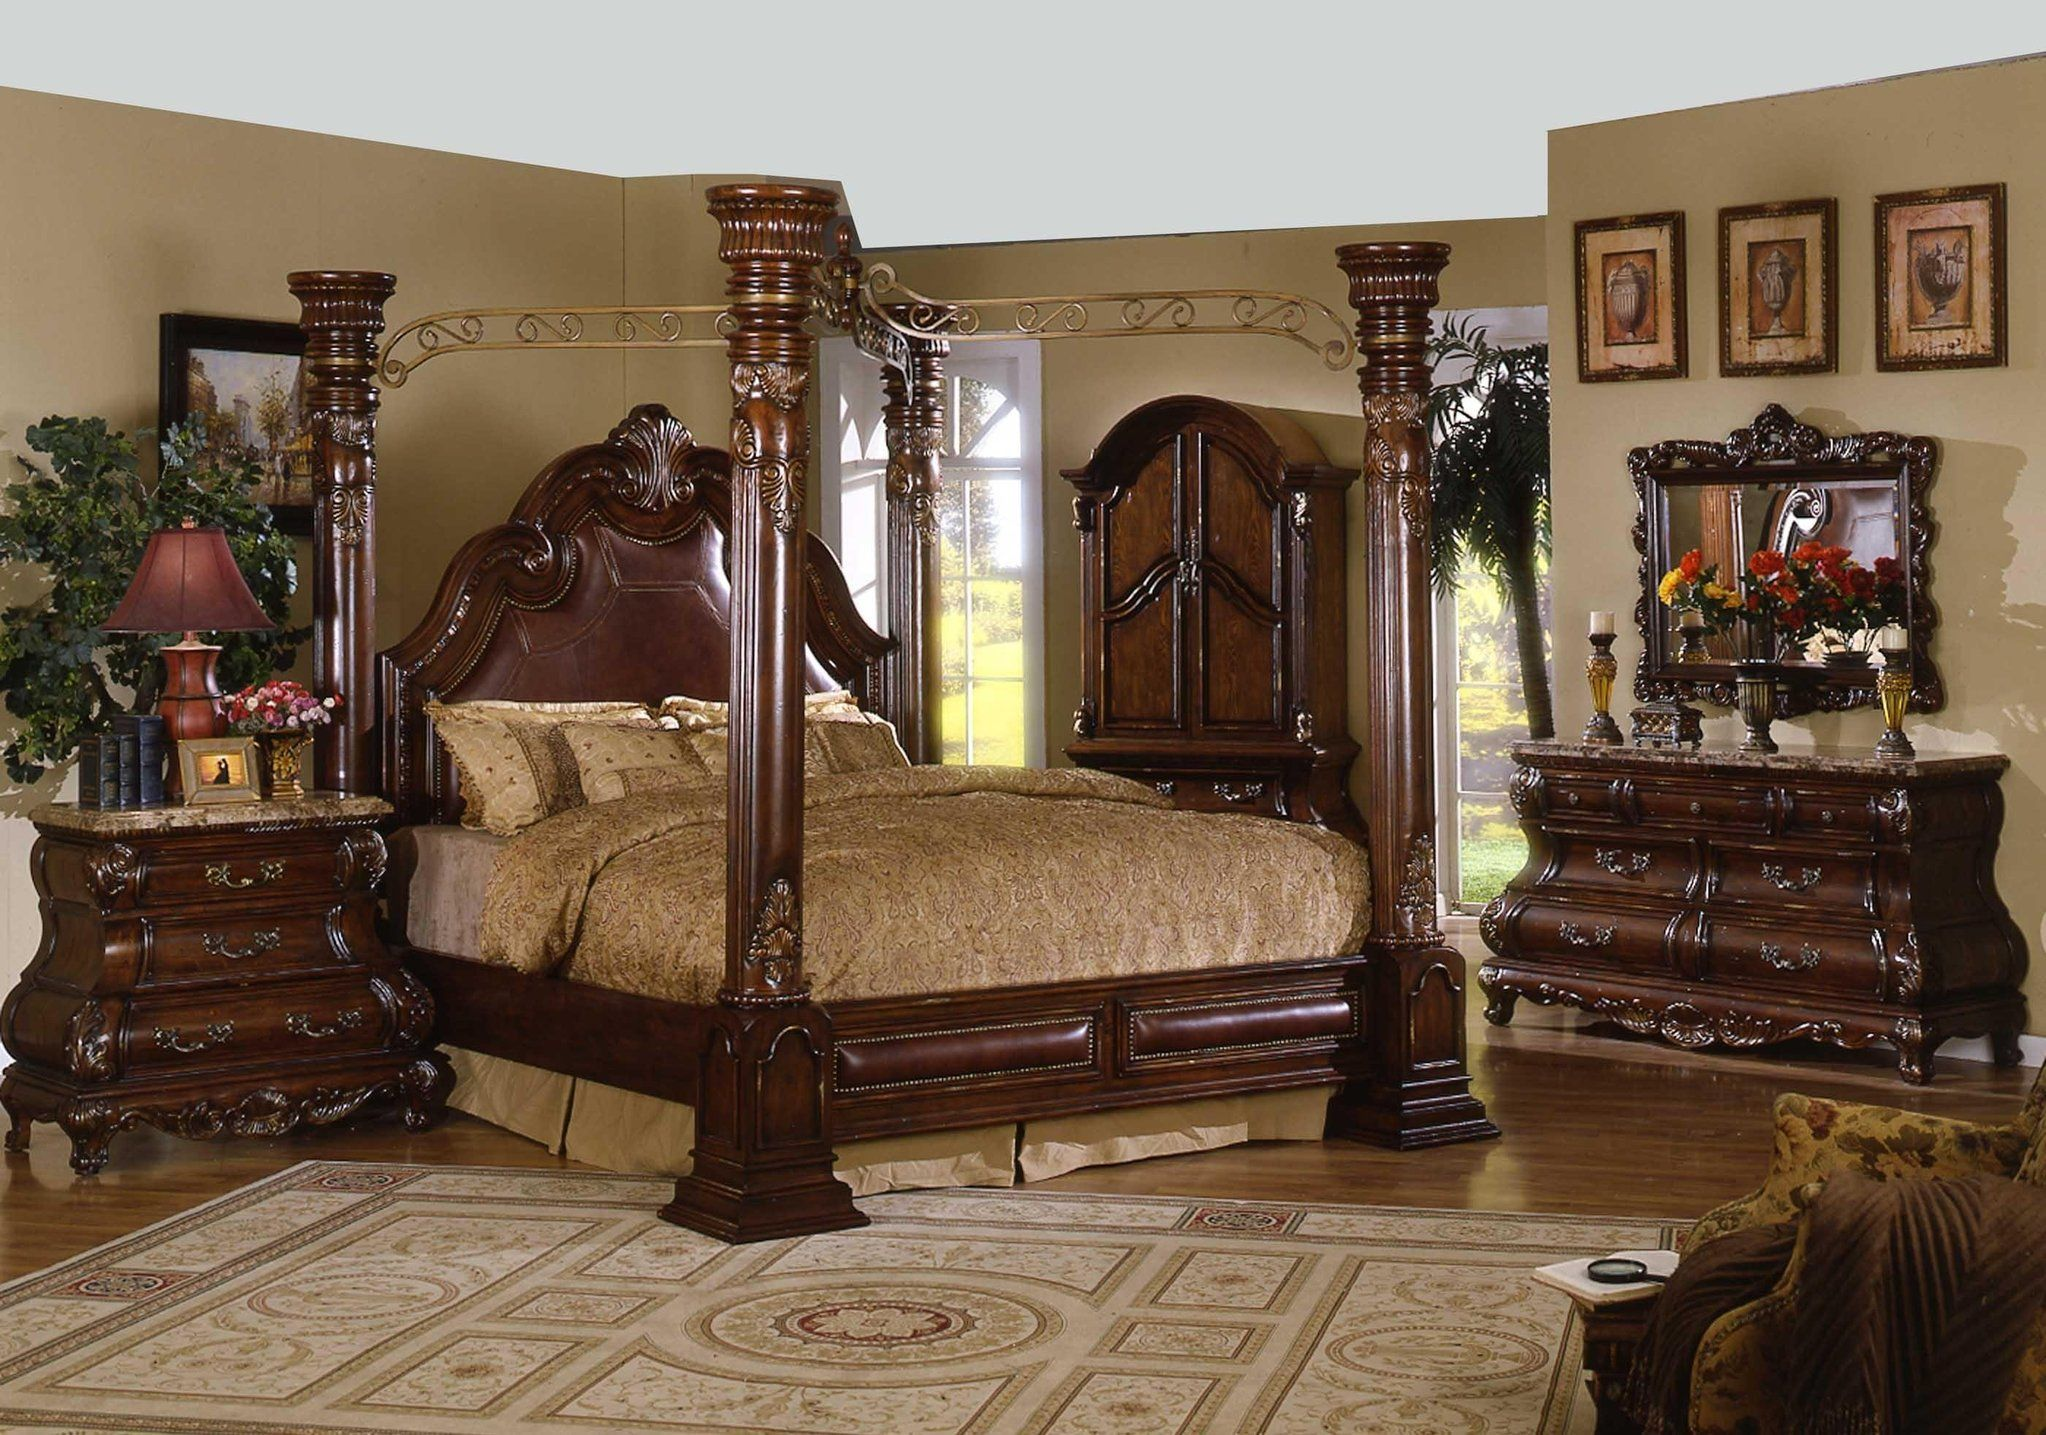 2 499 Canopy Bed   Canopy Bedroom Sets   Four Post Canopy Bed 4734. 2 499 Canopy Bed   Canopy Bedroom Sets   Four Post Canopy Bed 4734